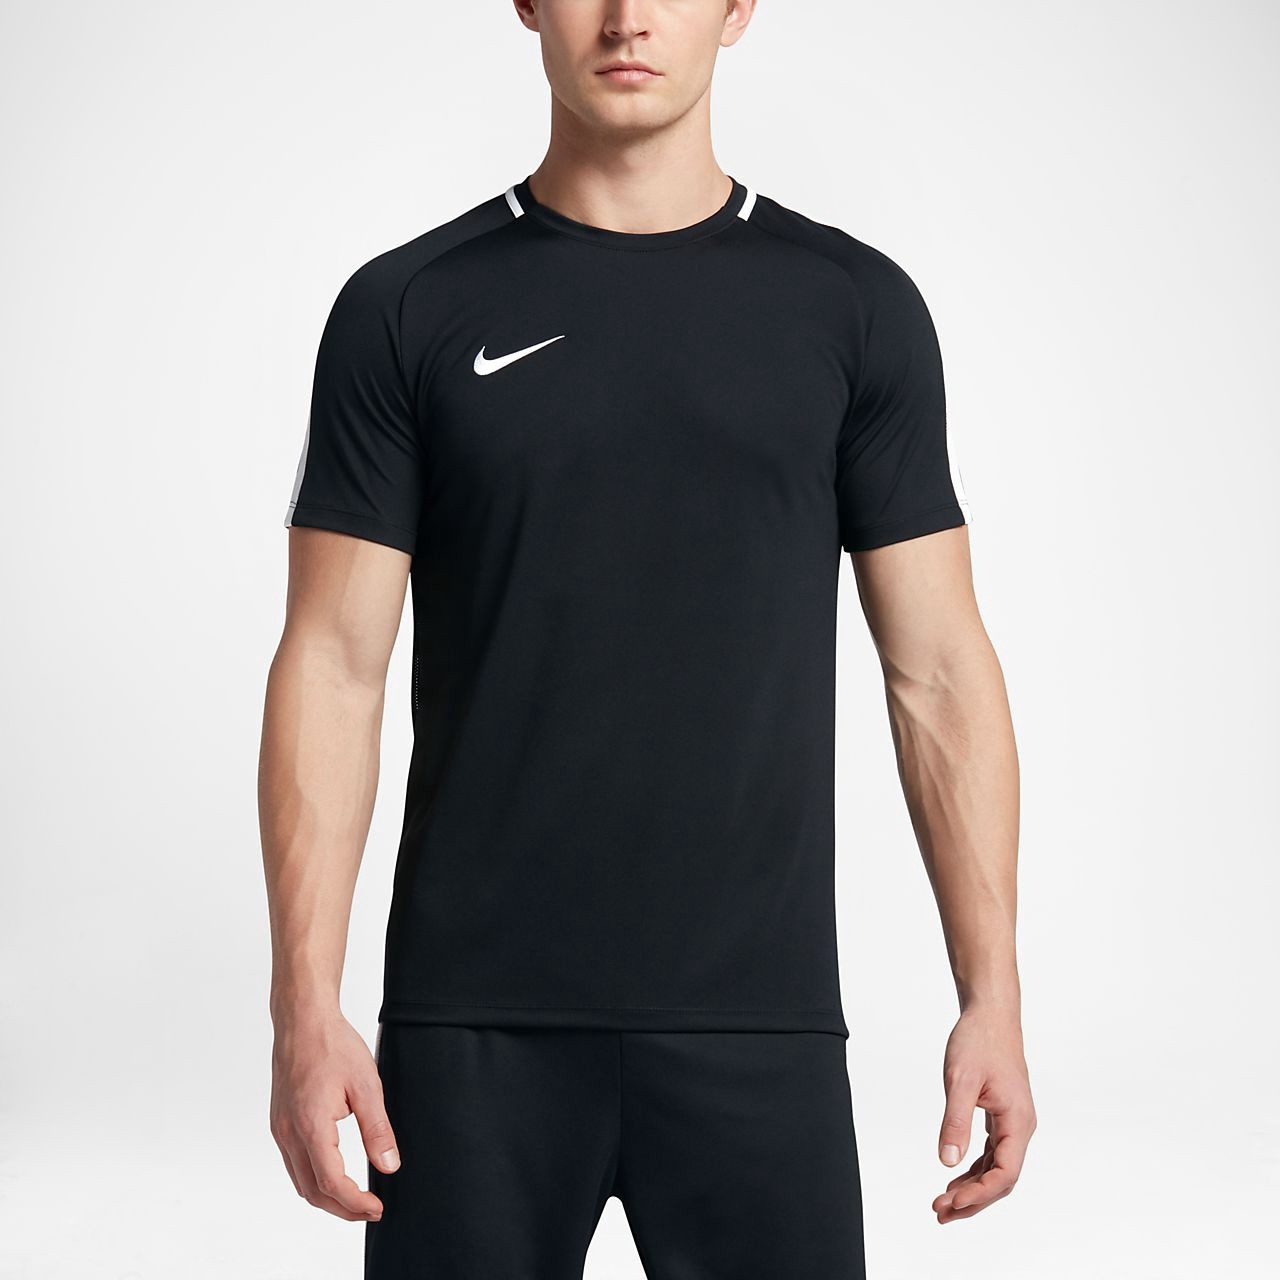 ffdf412d Nike Dri-Fit Academy Men's Soccer Top - S in 2019 | Products | Nike ...